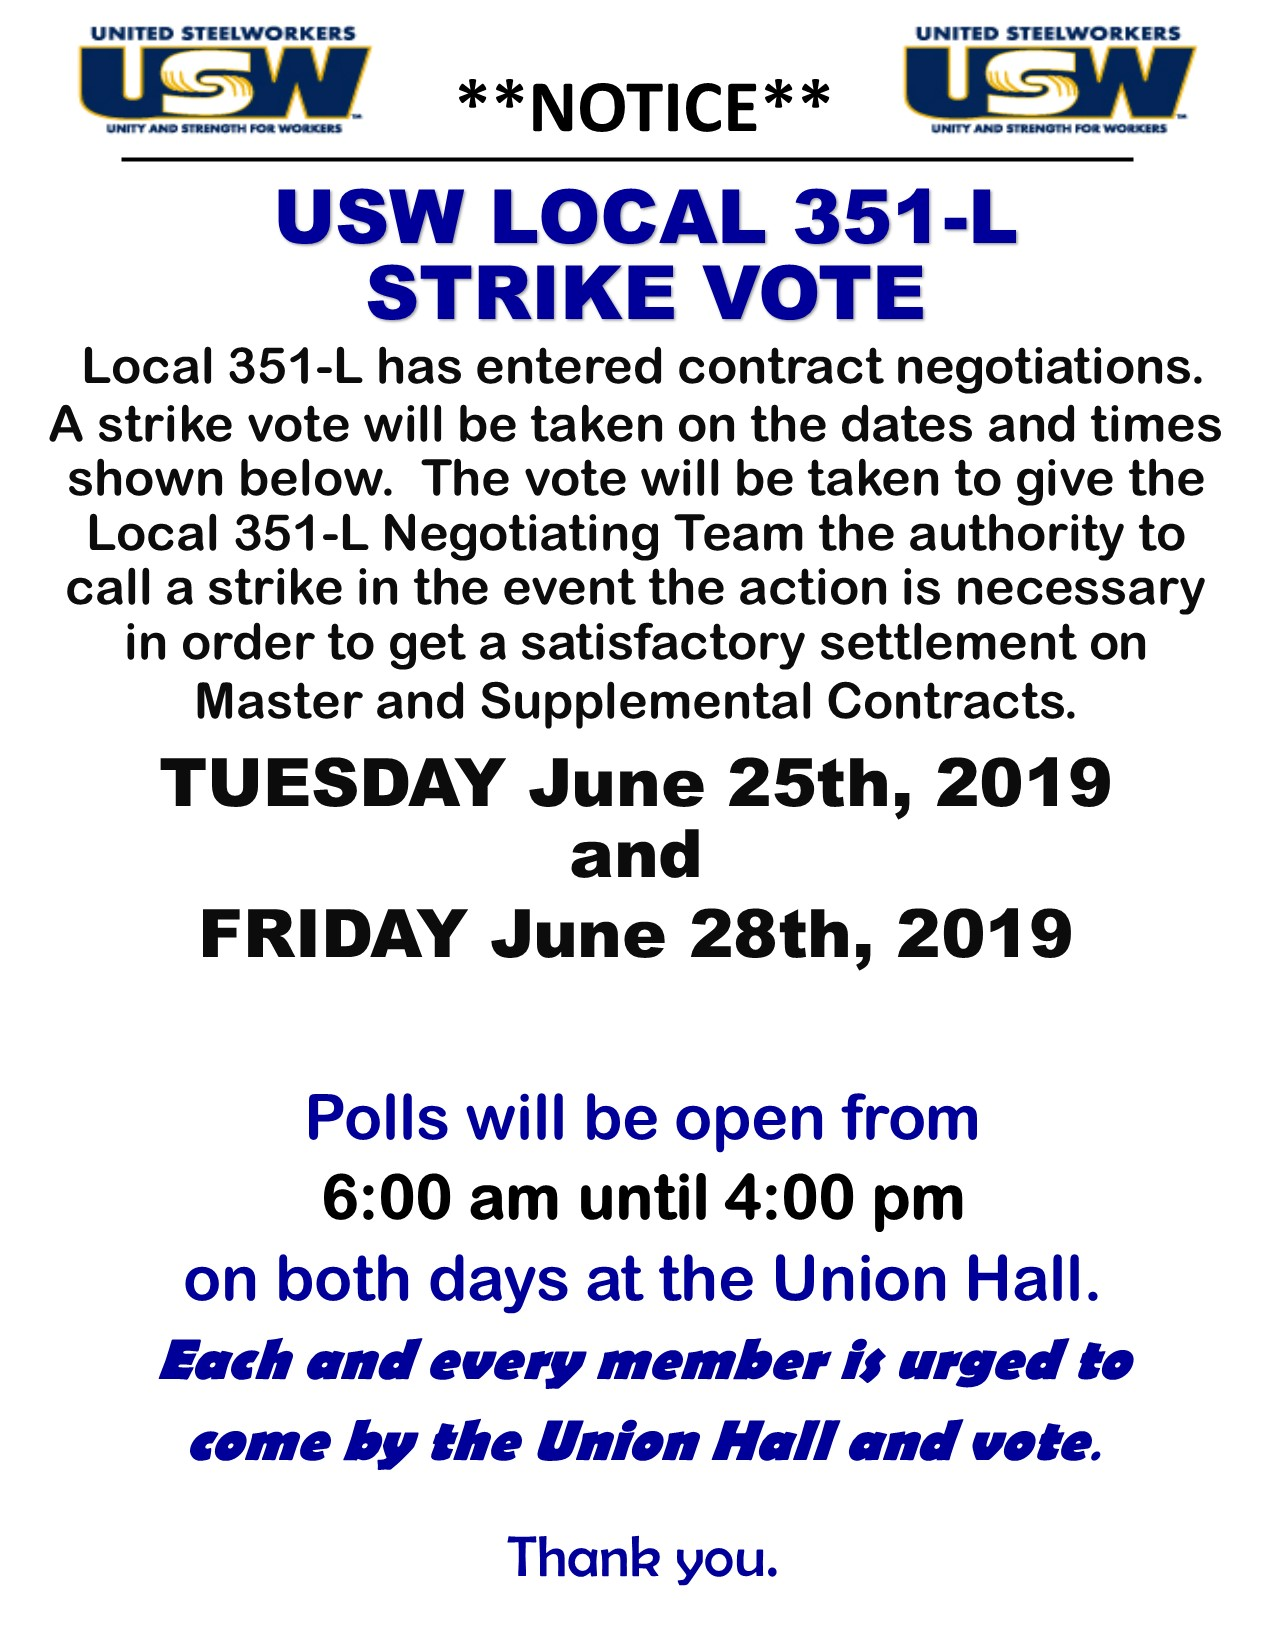 2019 - Strike Vote Notice.jpg